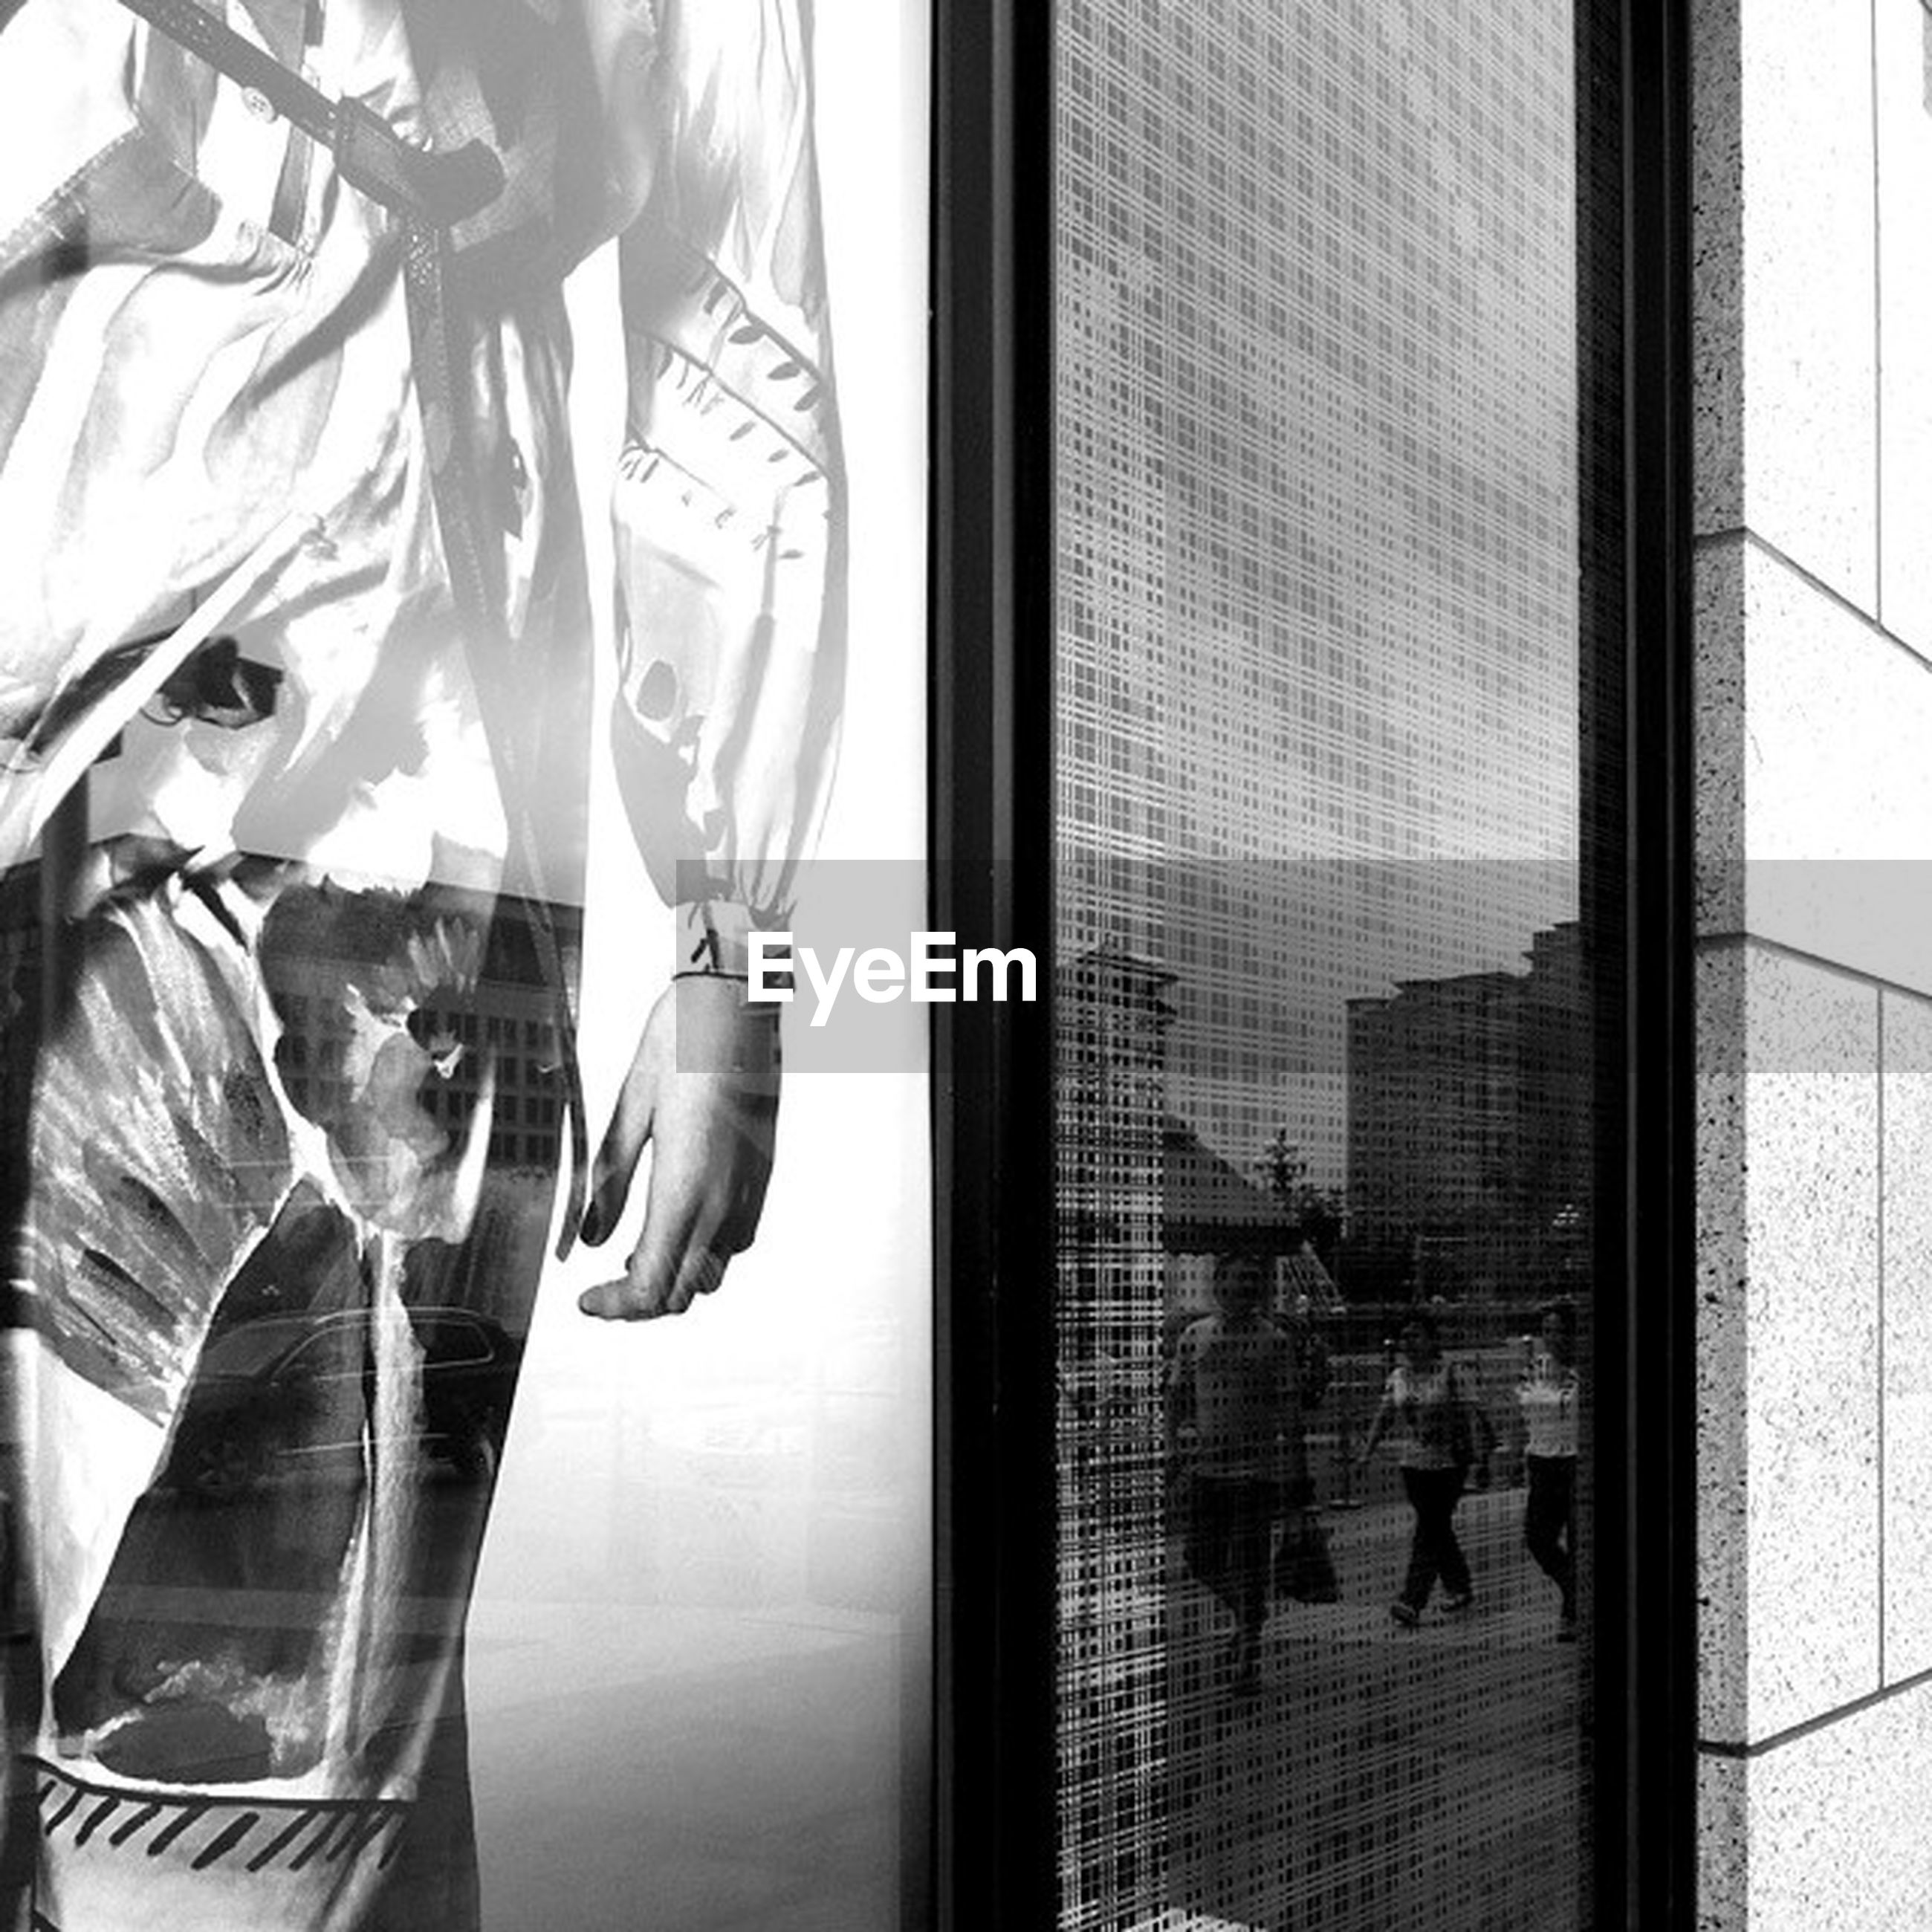 glass - material, window, indoors, transparent, reflection, architecture, built structure, lifestyles, glass, building exterior, men, modern, person, leisure activity, city, curtain, day, looking through window